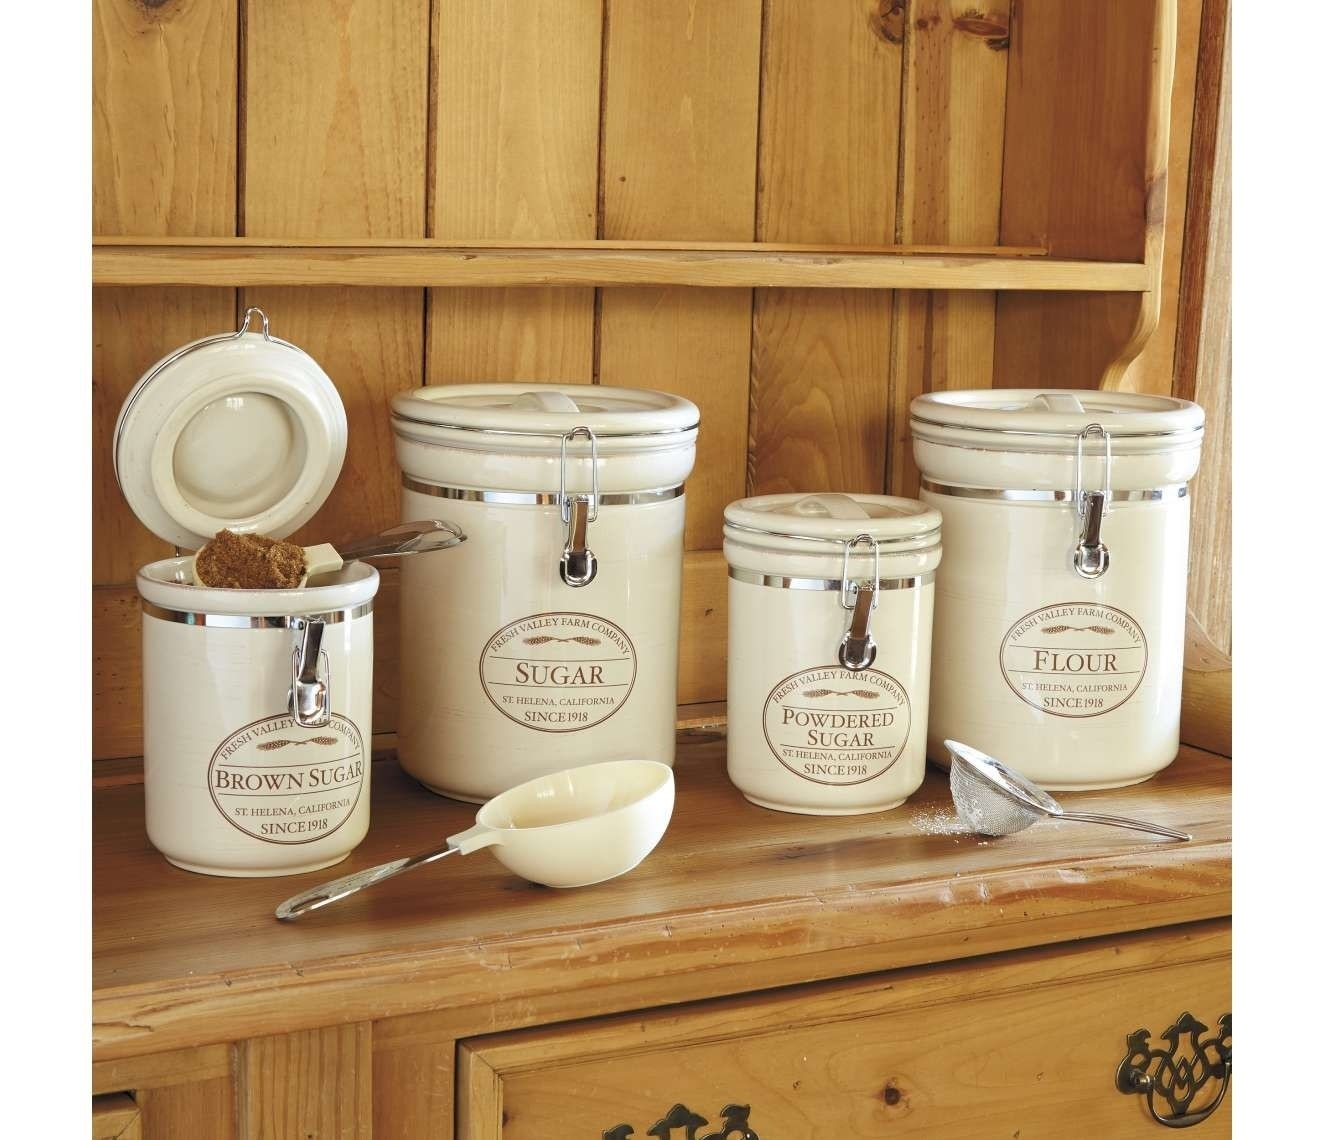 WITH LIDS 8 PIECE METAL SET OF CANISTERS FOR YOUR DOLL HOUSE KITCHEN